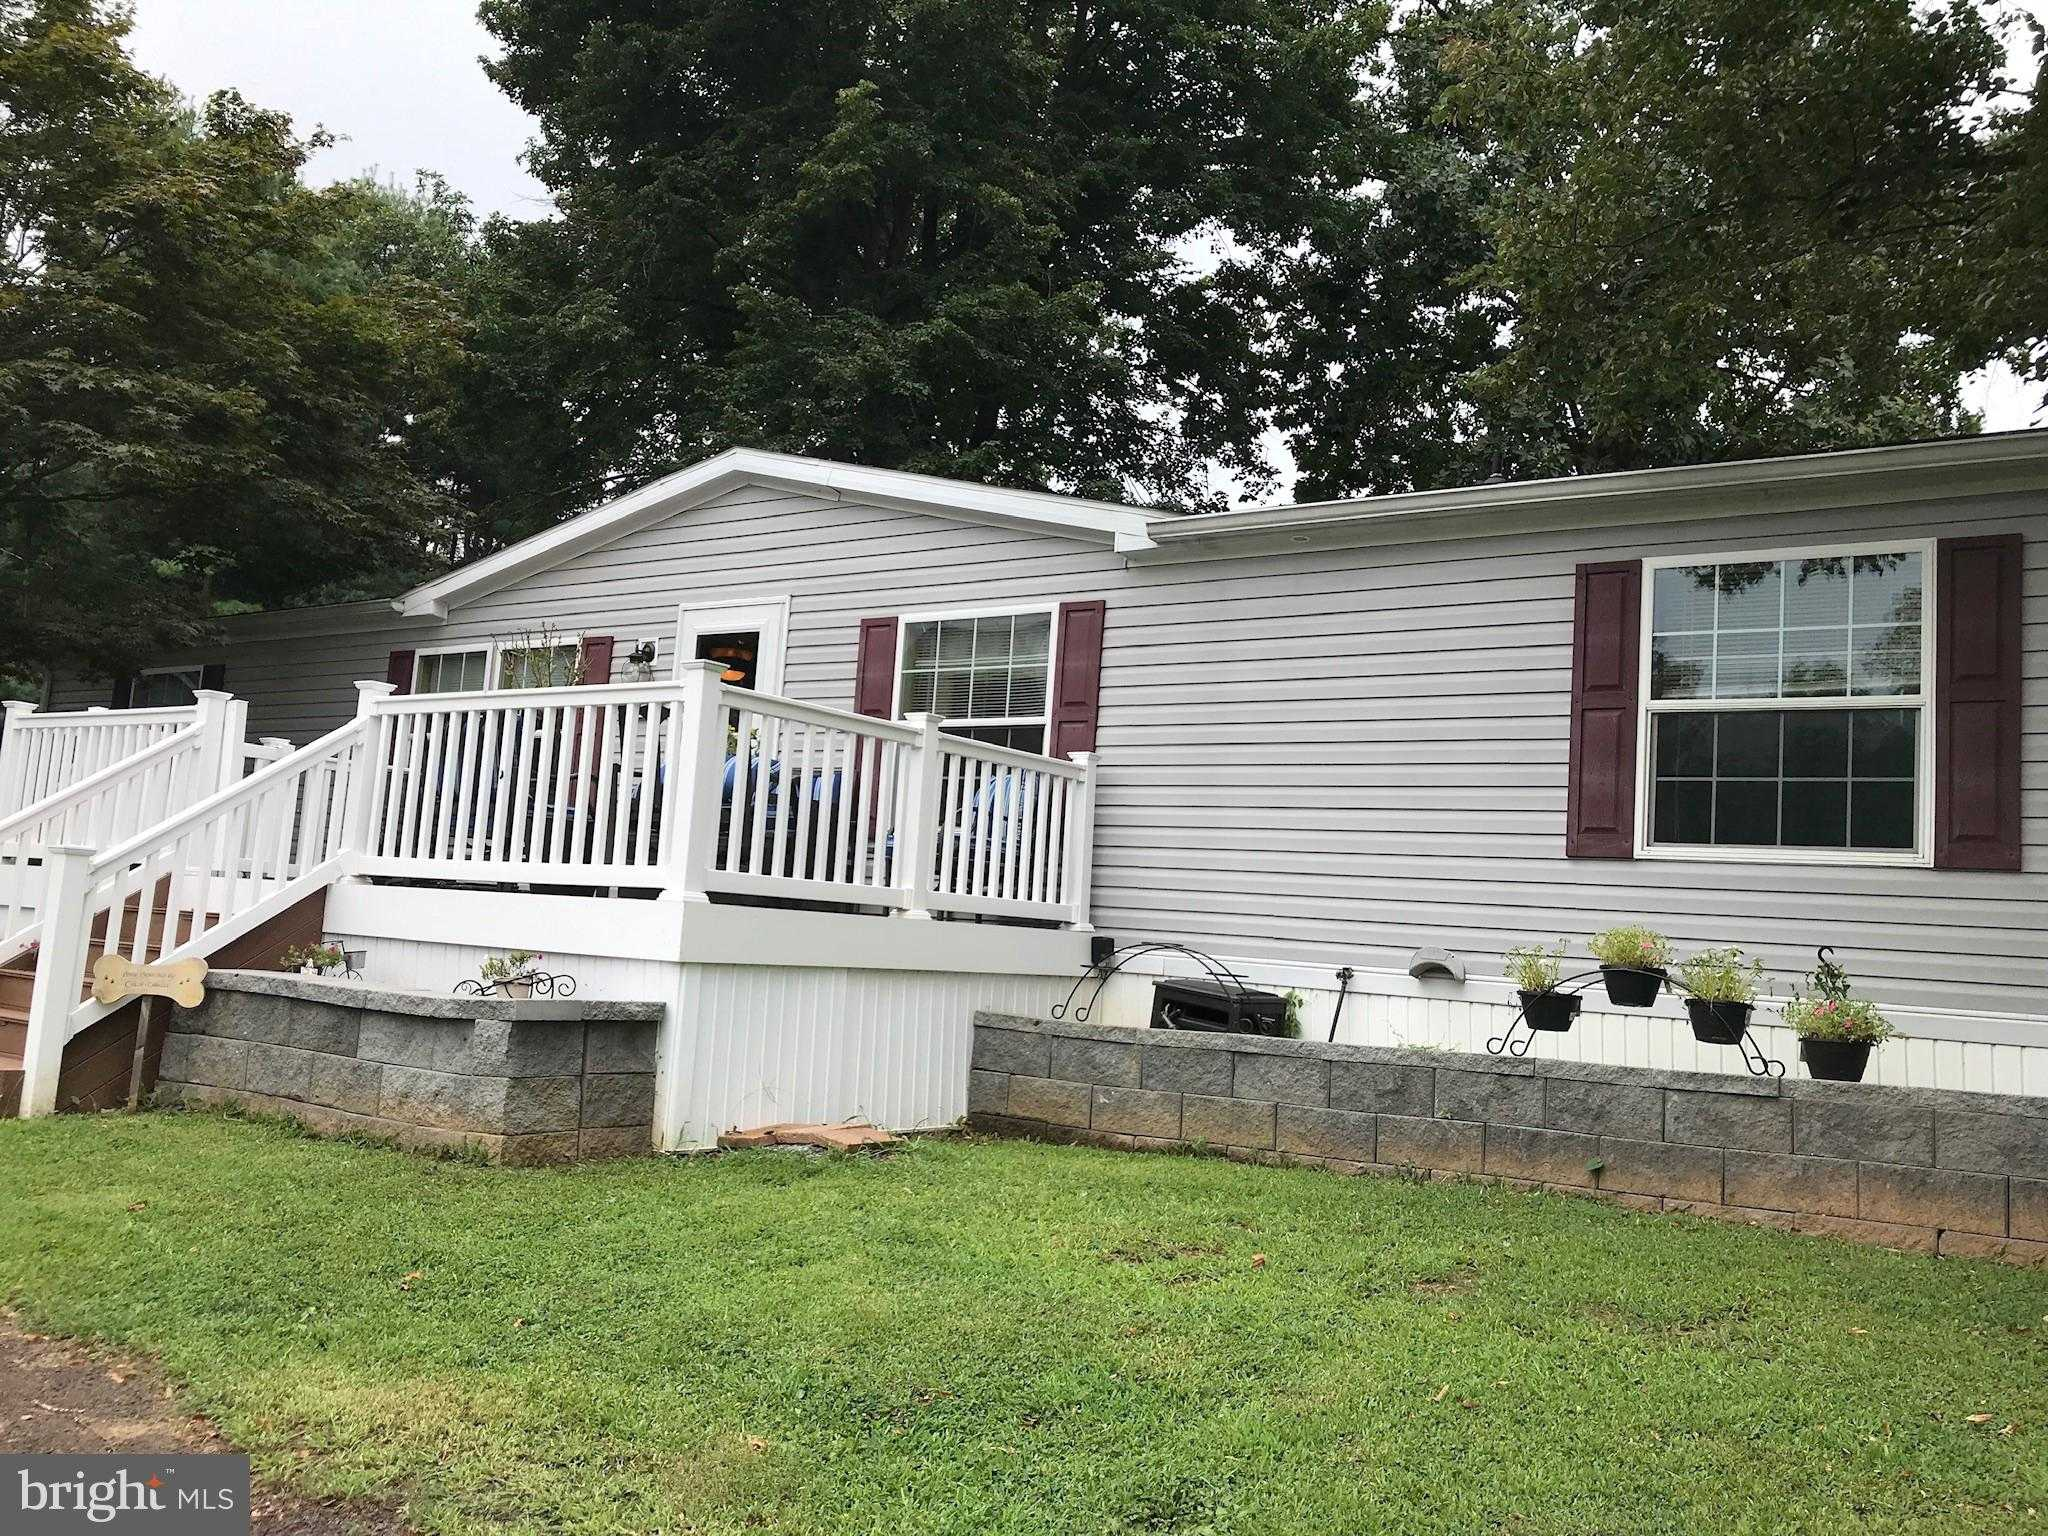 $89,900 - 3Br/2Ba -  for Sale in Melodylakescntryclub, Quakertown